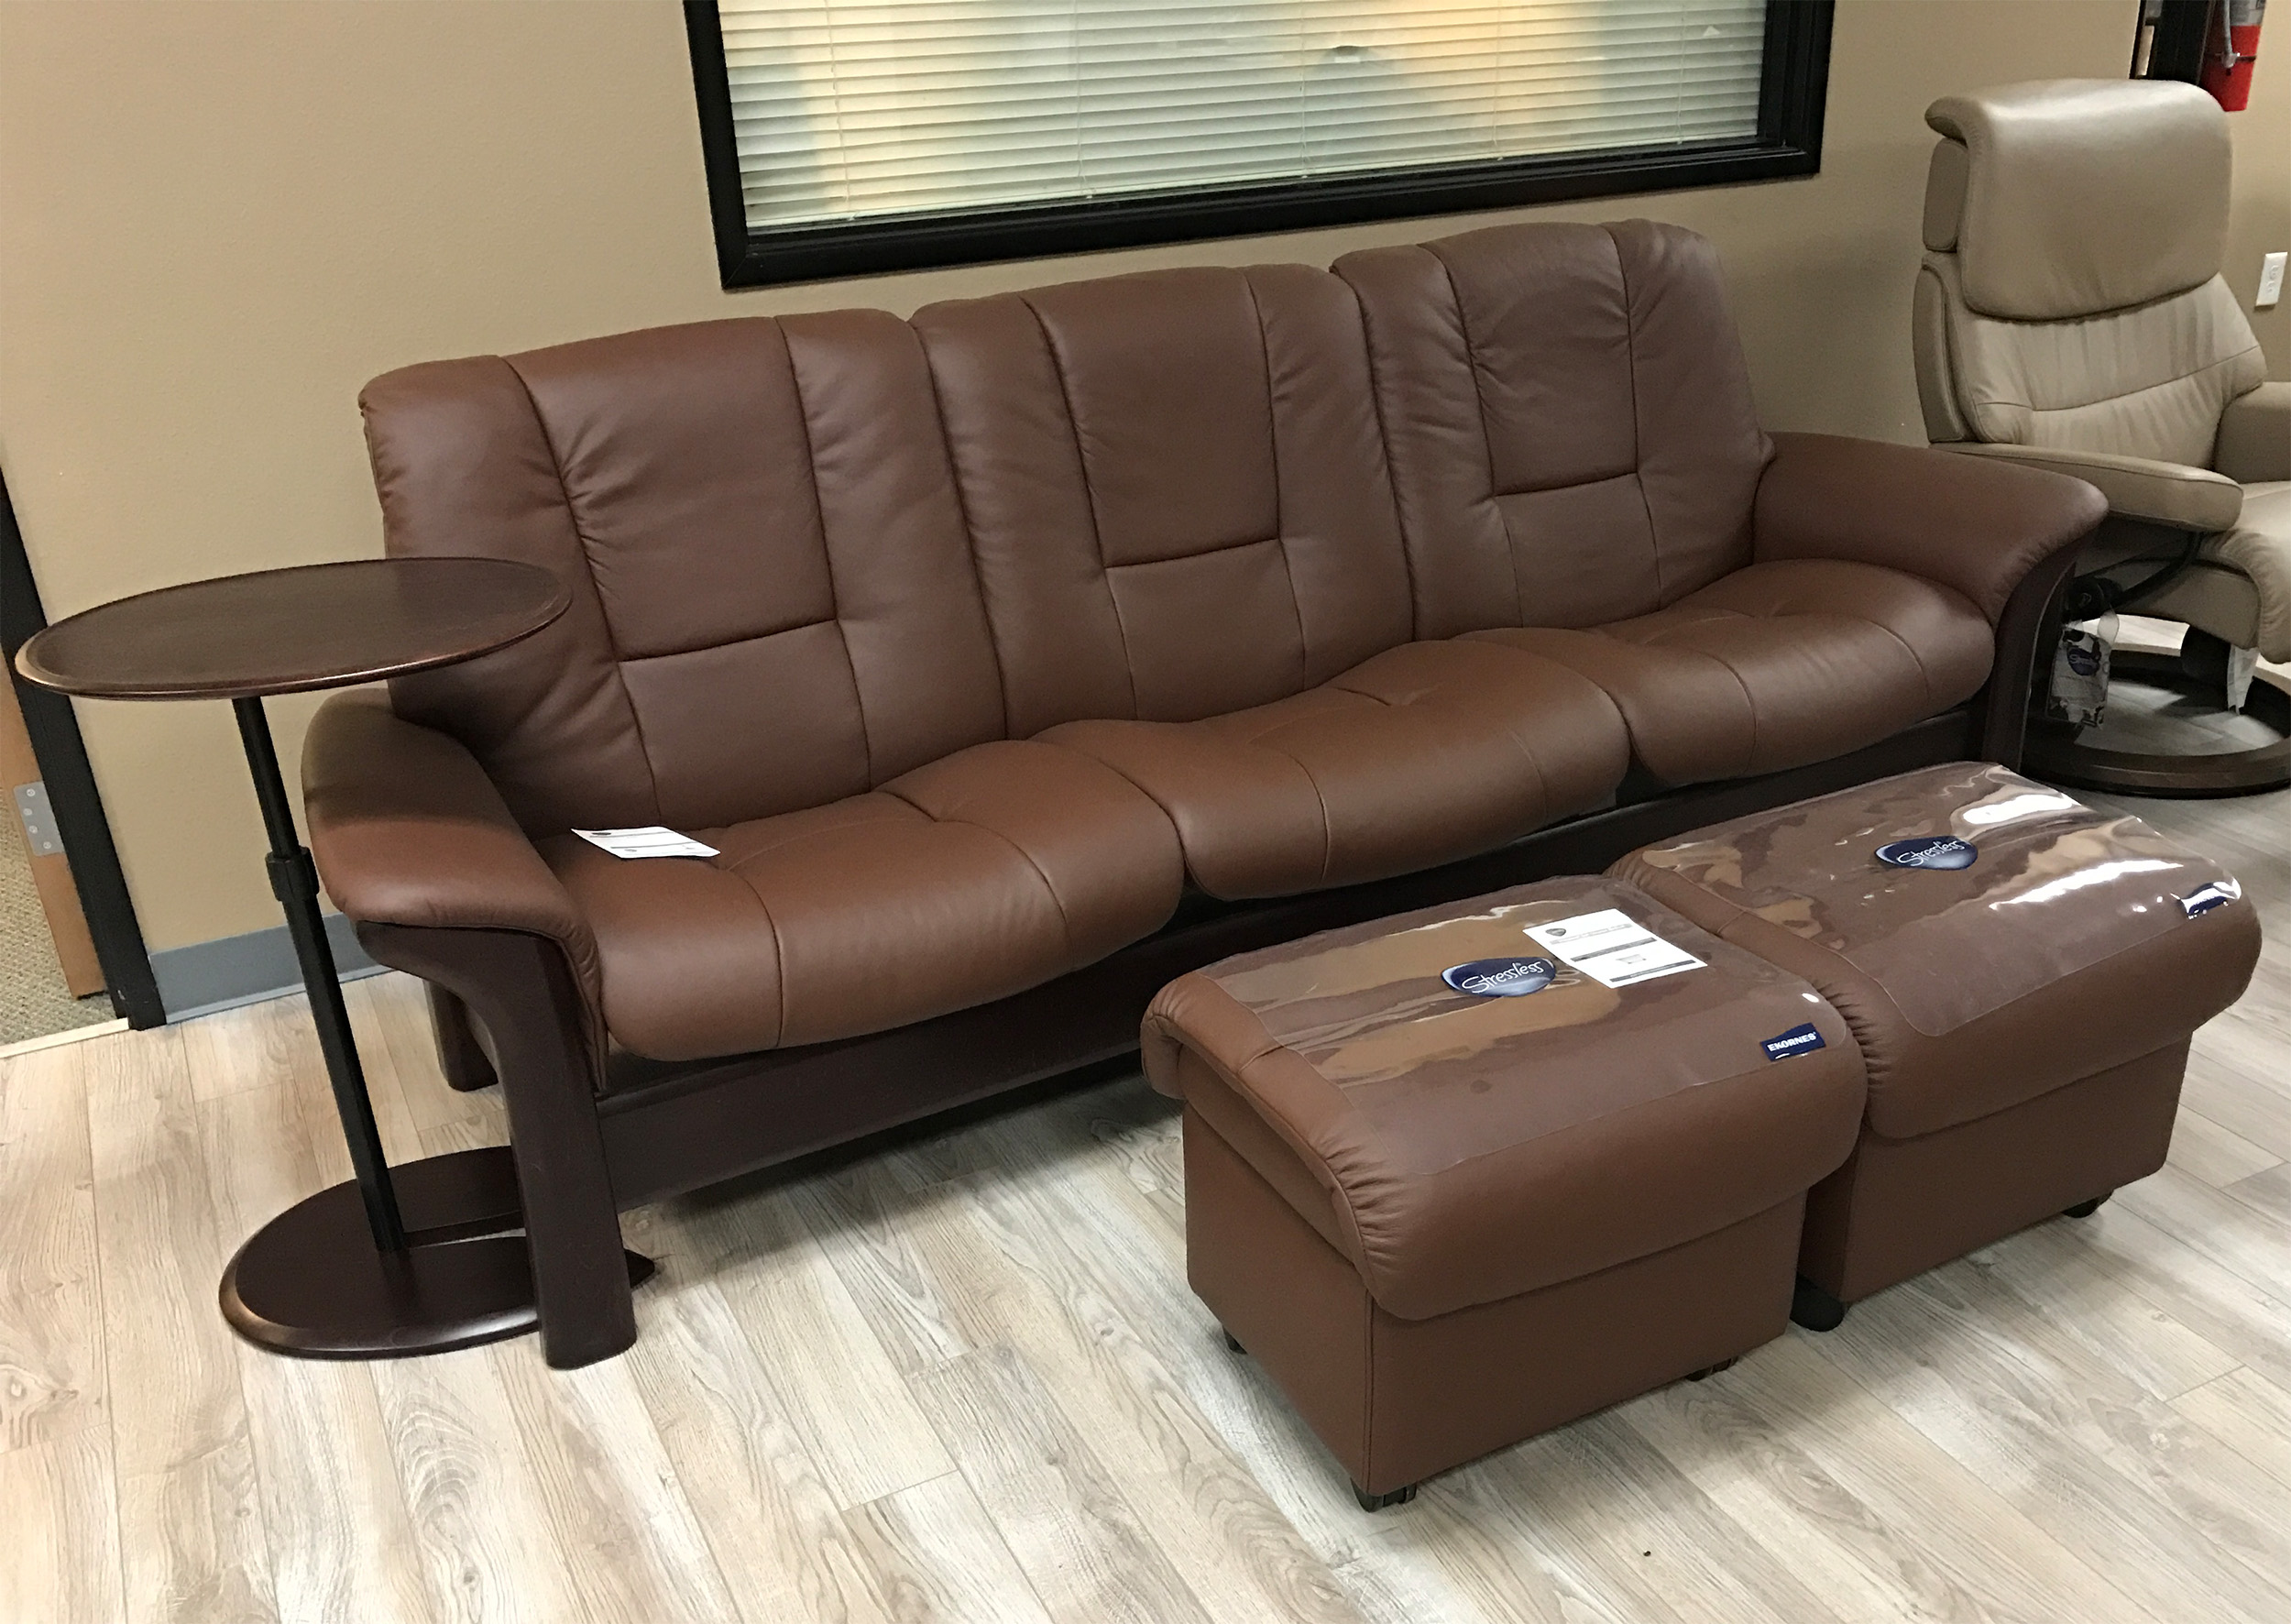 Seat Low Back Sofa Paloma Brown Leather